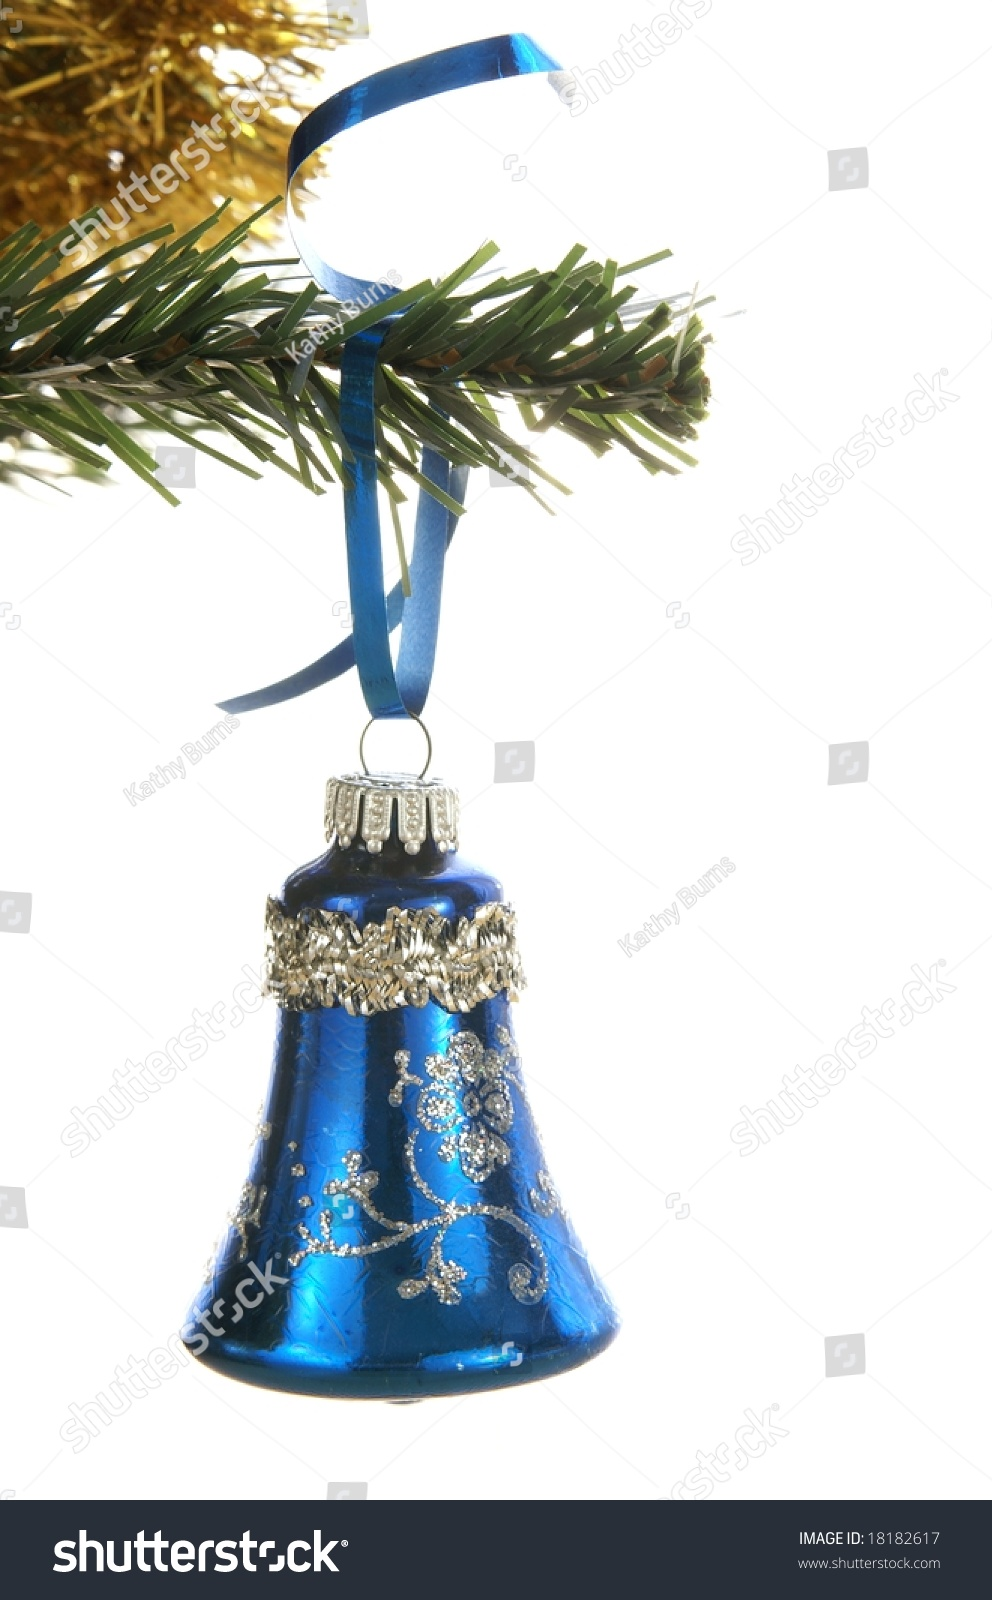 Blue Christmas Bell Ornament Hanging Tree Stock Photo (Edit Now ...